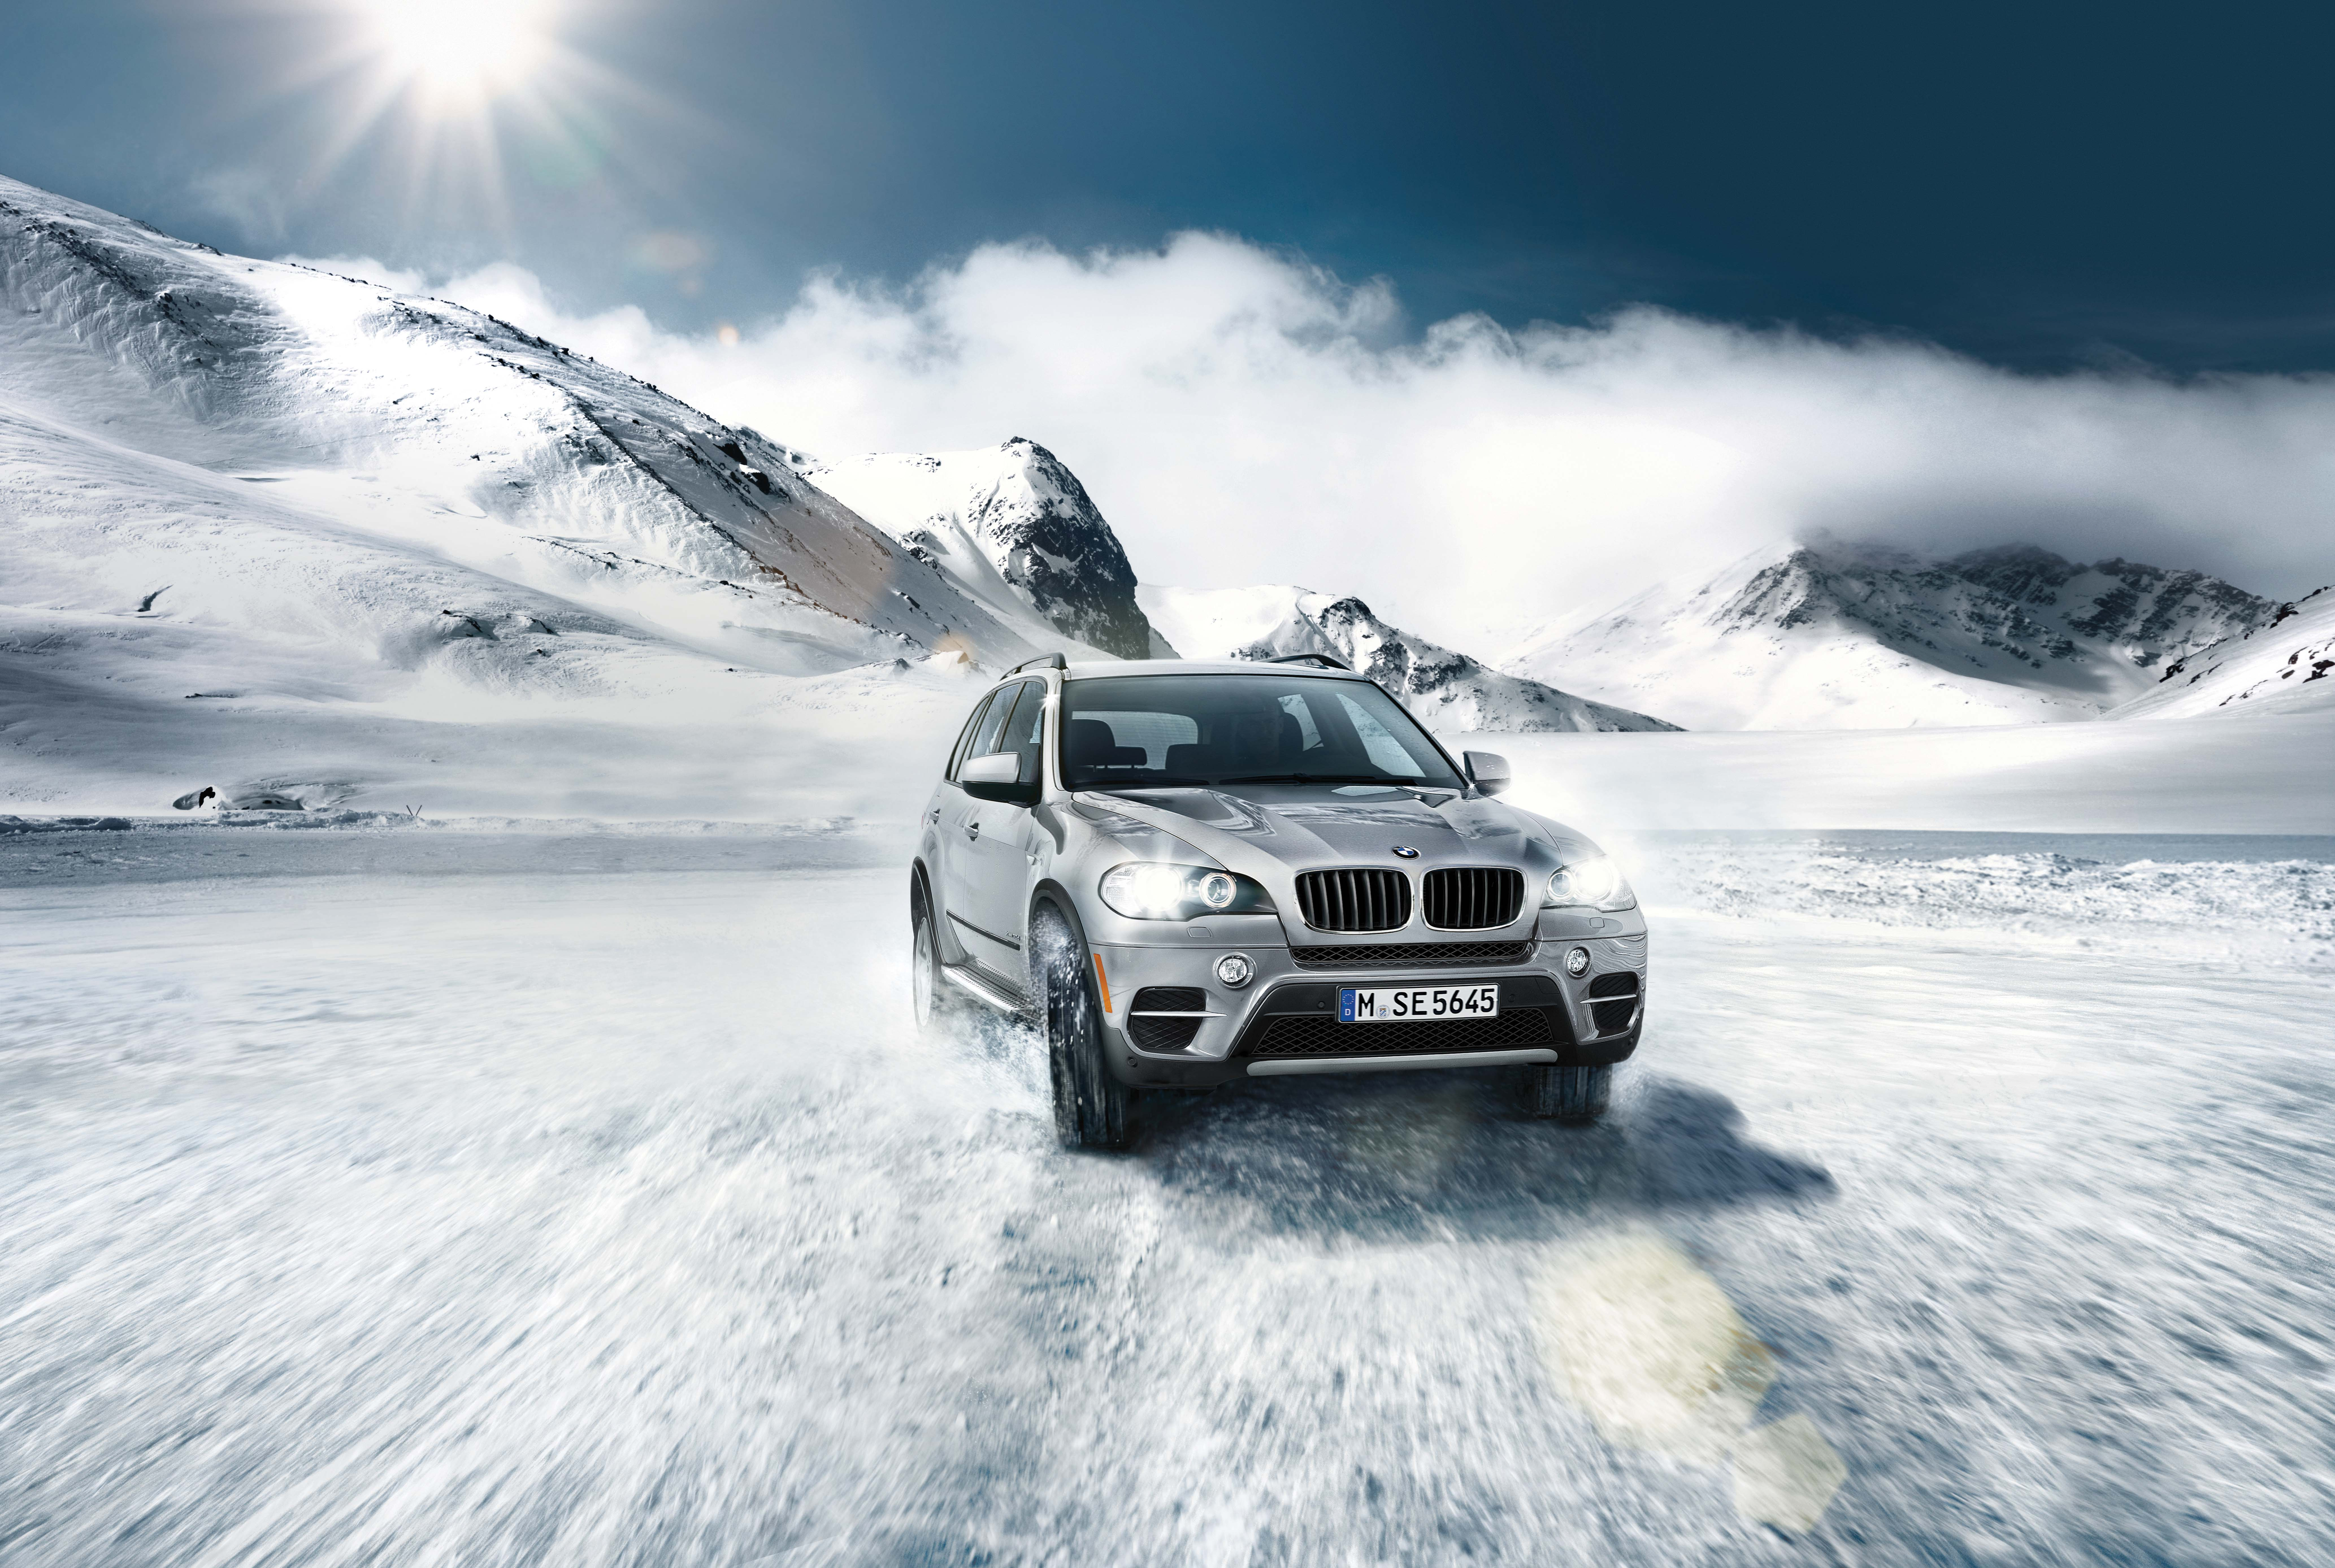 3 Reasons Why Bmw Vehicles Are Great For Winter Edmonton Bmw